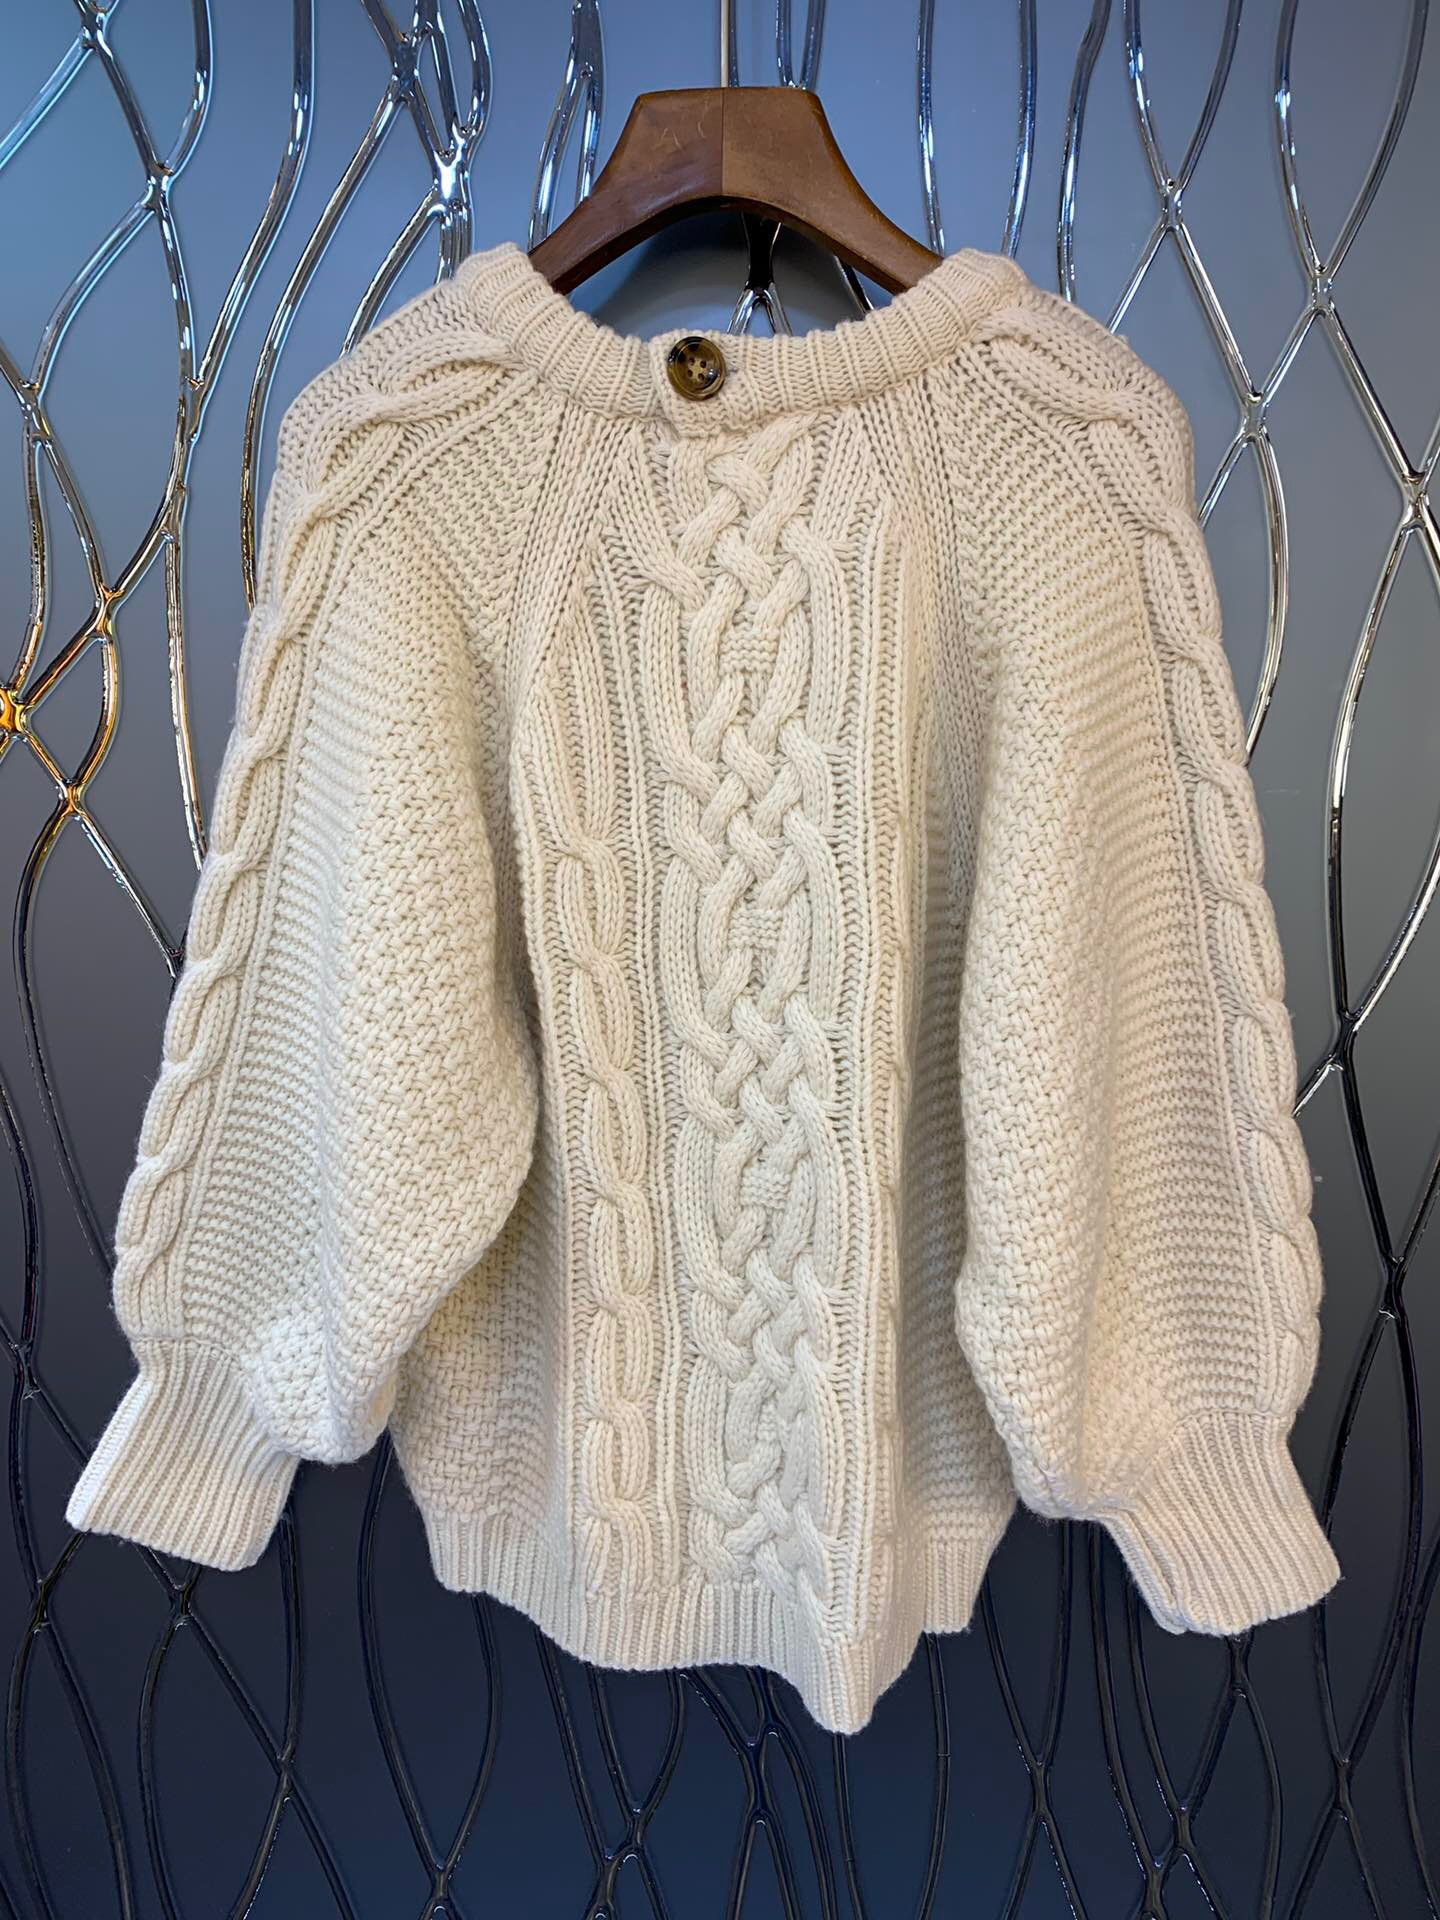 2019 New Casual Fashion Beige Cashmere Pullover Sweaters Winter O Neck Hot Sale Loose Style - 5